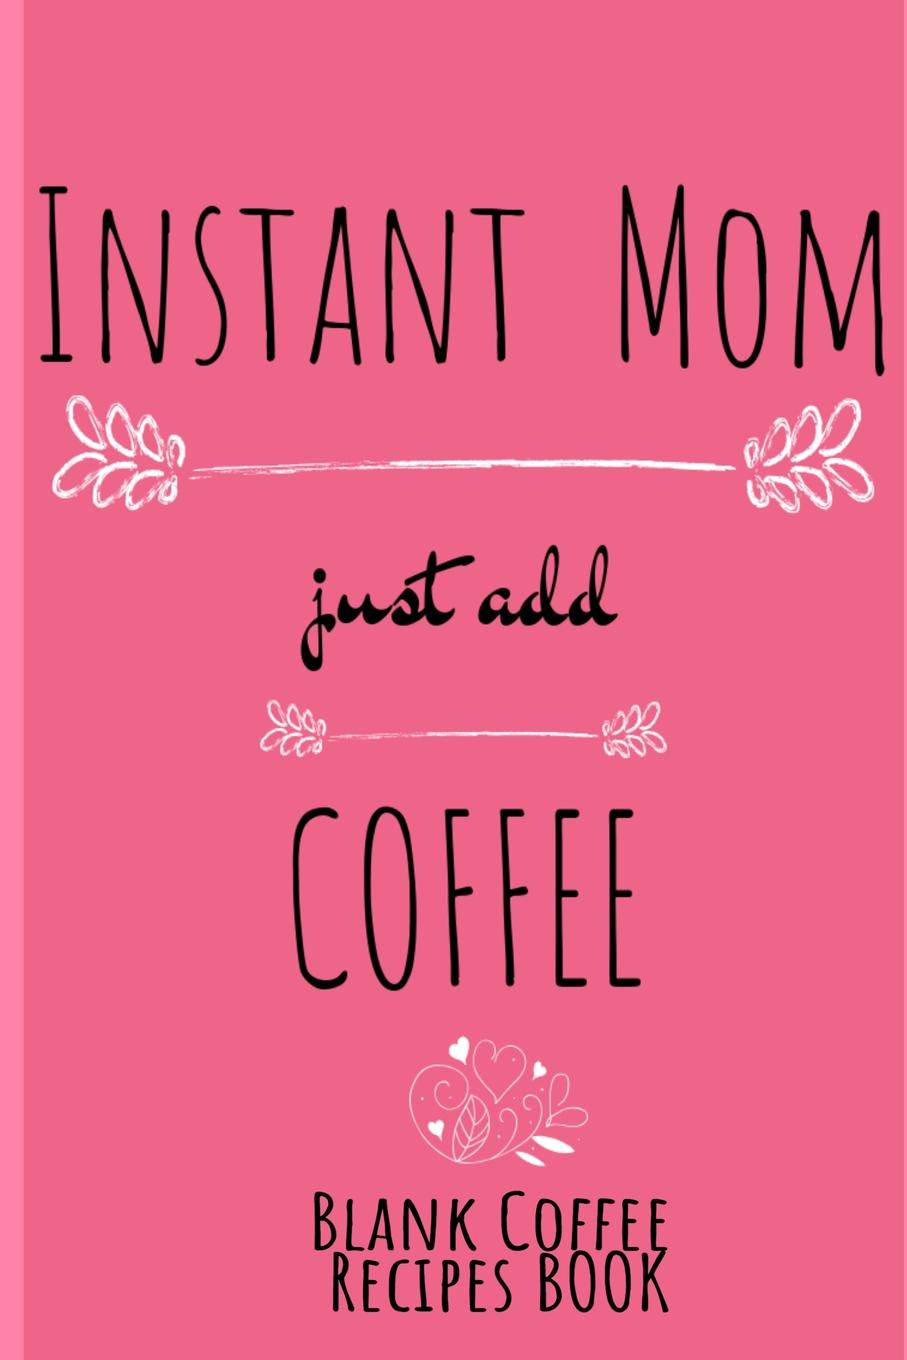 Jennifer Wellington Instant Mom, Just Add Coffee Blank Recipes Book. Write Down Your Favorite Cappucino, Espresso & Tea Recipes In This Beautyiful Pink Recipes Cookbook - Beverage Recipe Book For Mom - Beautiful Mother Gift Notebook With Flower Decoration, 6x9 Line... journal jungle publishing my recipe book 100 recipe pages conversion tables quotes and more make your own cookbook using this blank recipe book 8 x 10 inches pink purple and orange